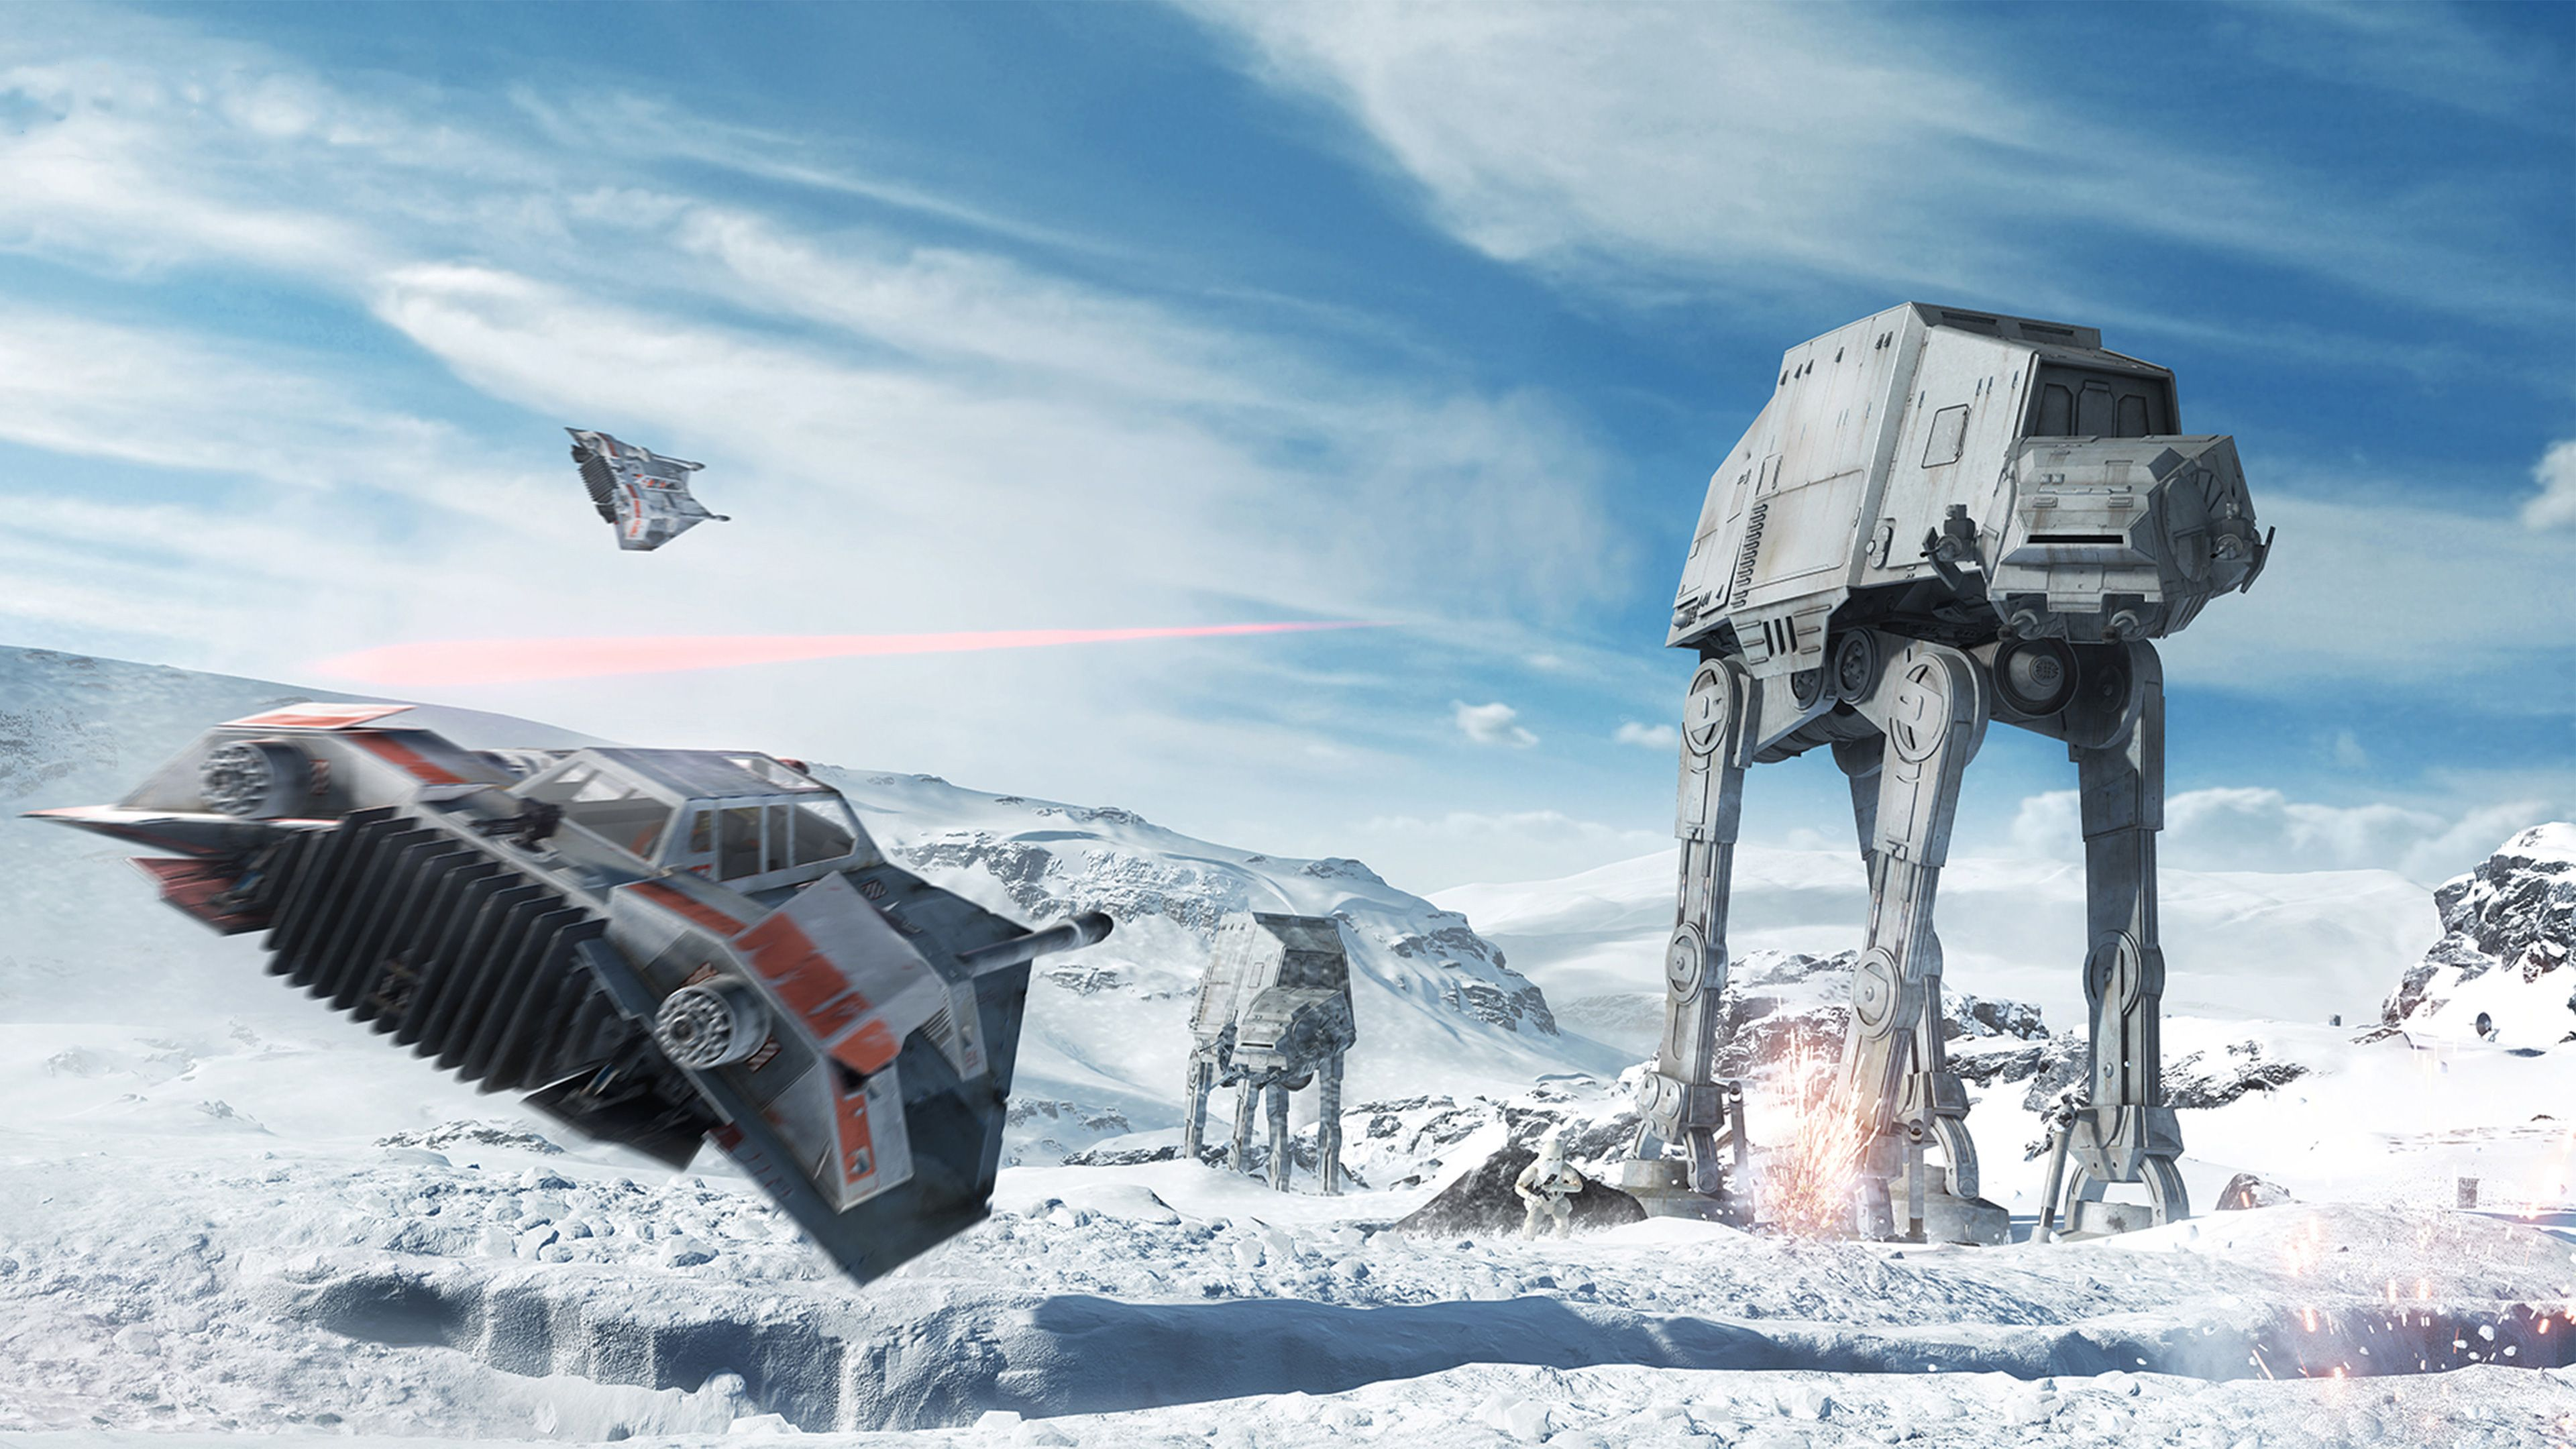 Star Wars Tablet Wallpapers Top Free Star Wars Tablet Backgrounds Wallpaperaccess